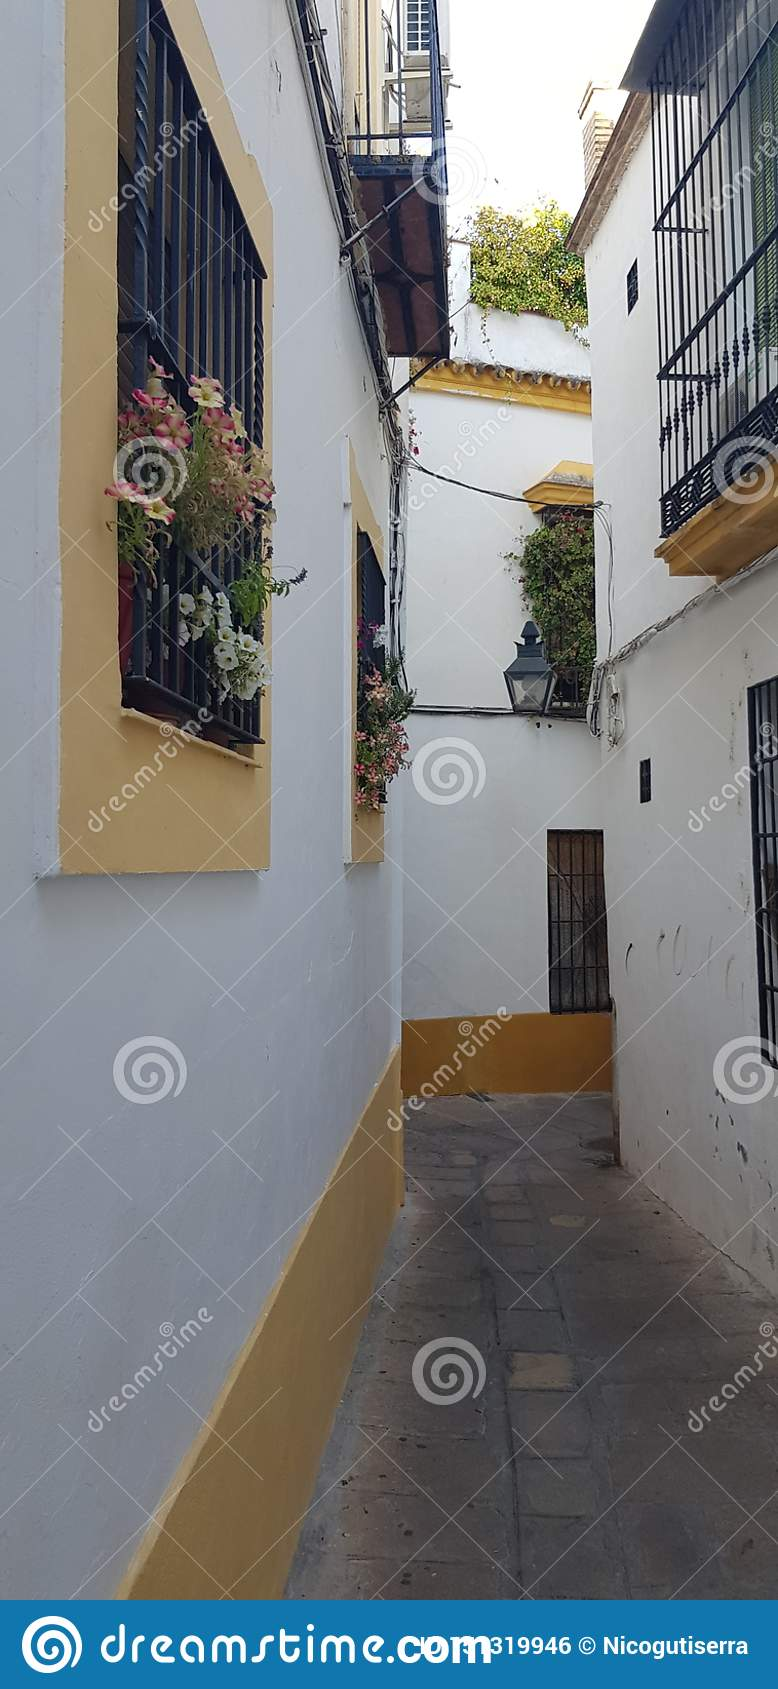 Andalusian Floral street garden